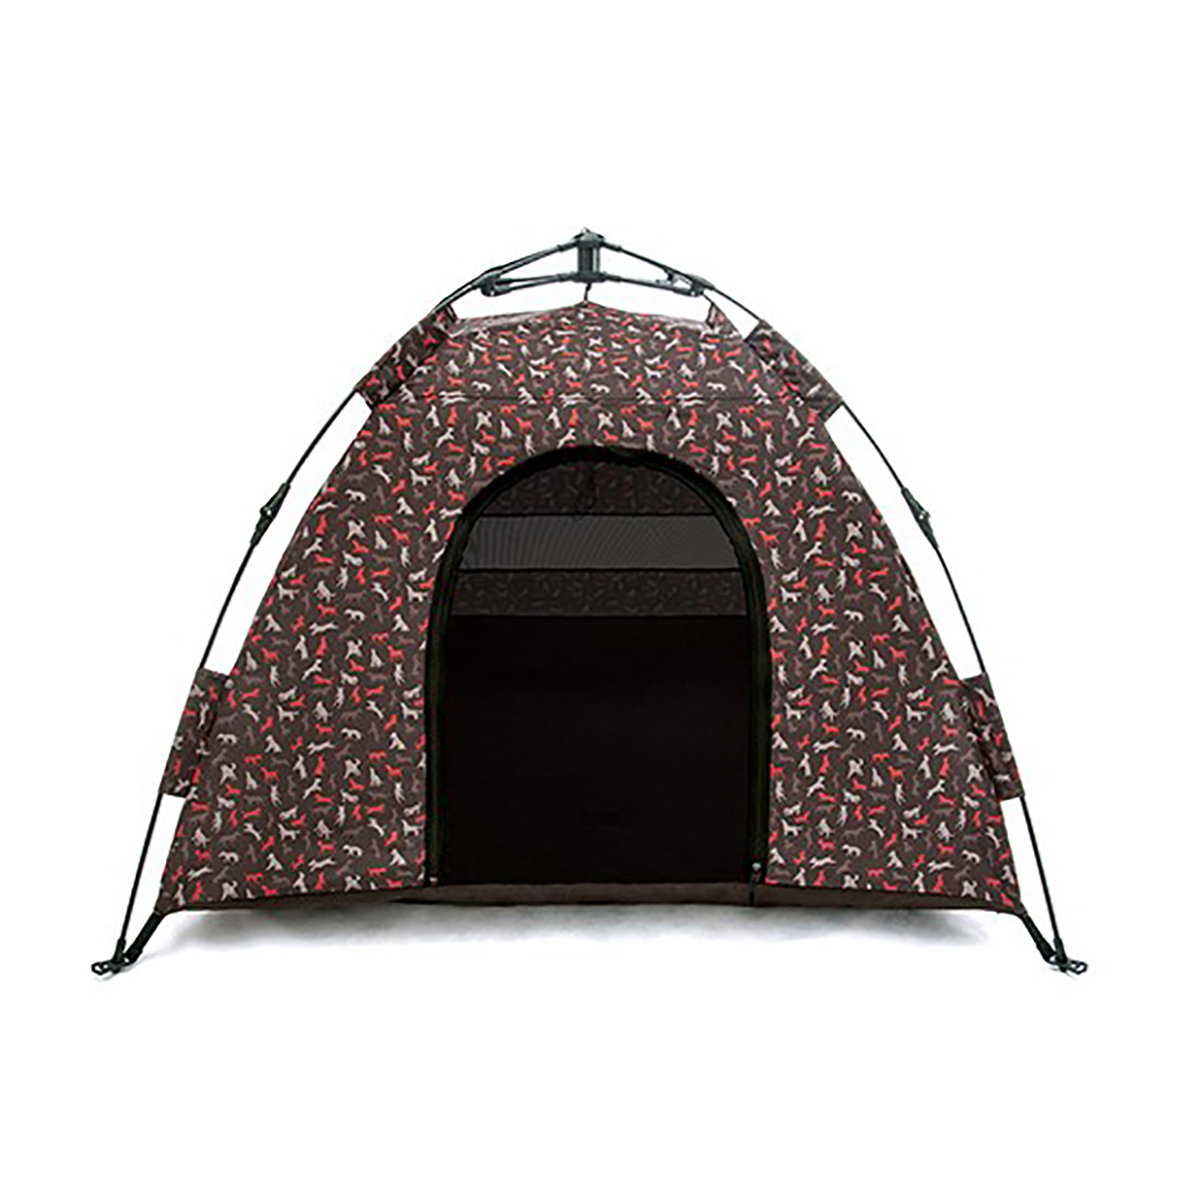 Scout and About Outdoor Dog Tent - Mocha with Same Day Shipping   BaxterBoo  sc 1 st  BaxterBoo.com & Scout and About Outdoor Dog Tent - Mocha with Same Day Shipping ...